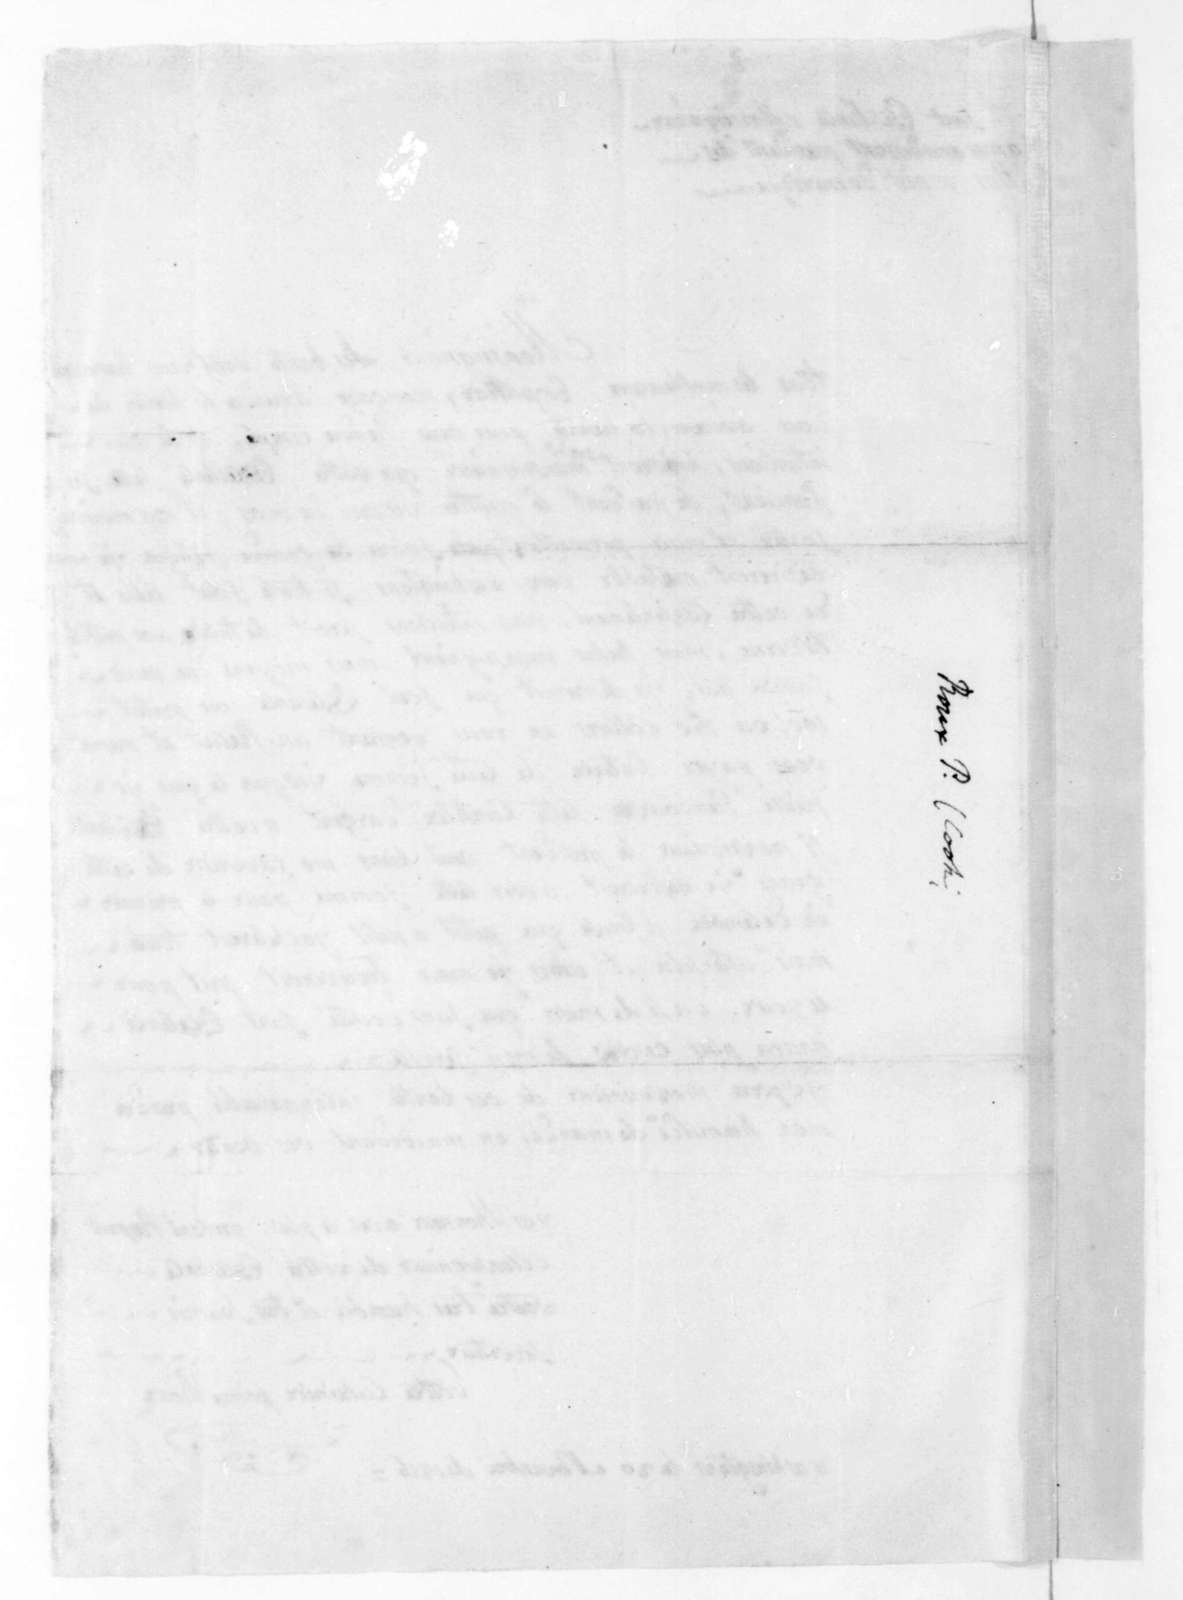 Pierre Roux to James Madison, November 20, 1816. In French.